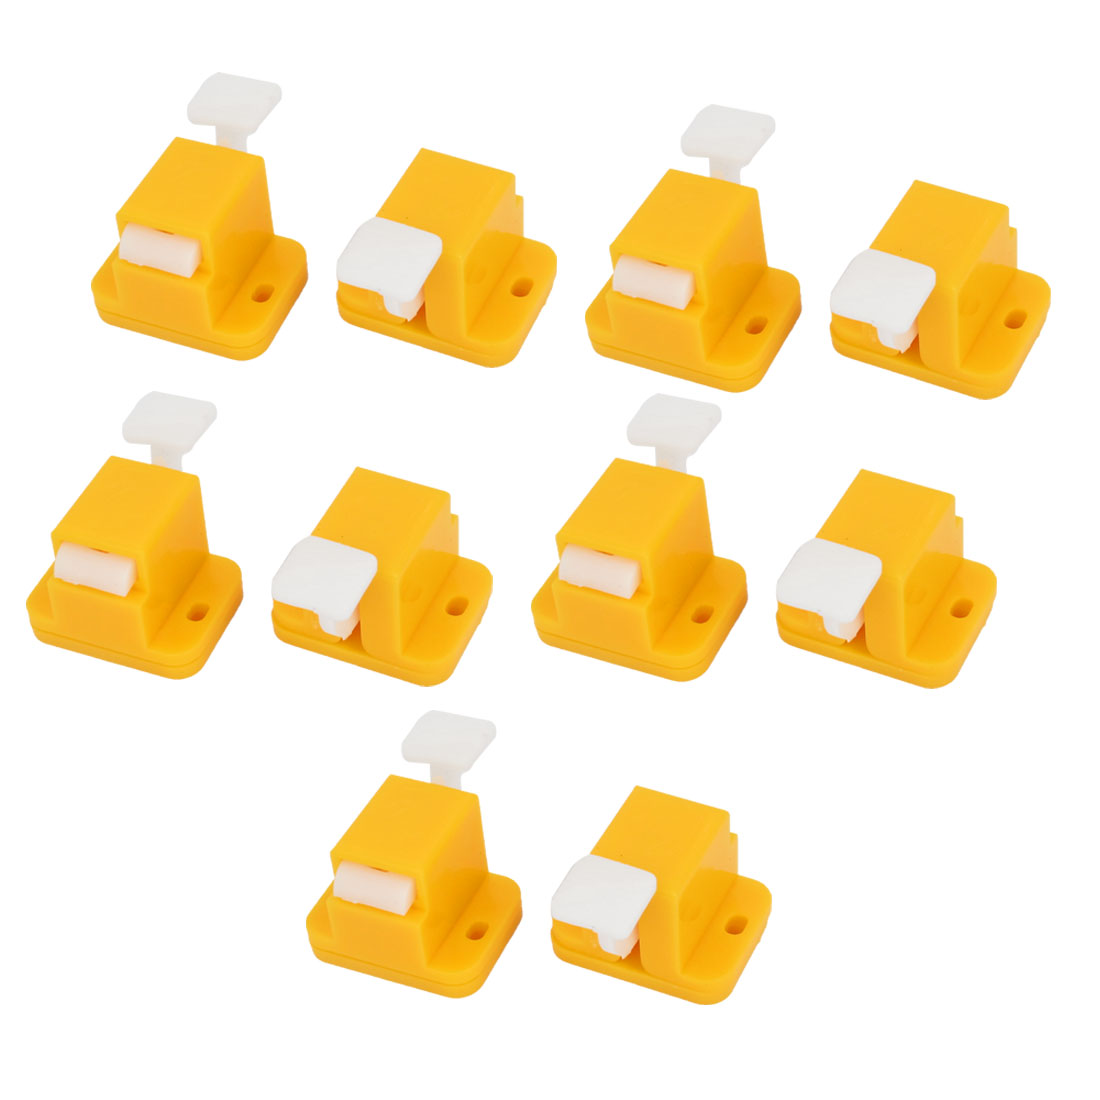 10 Pcs Plastic Prototype Test Fixture Jig Yellow for PCB Board DIY